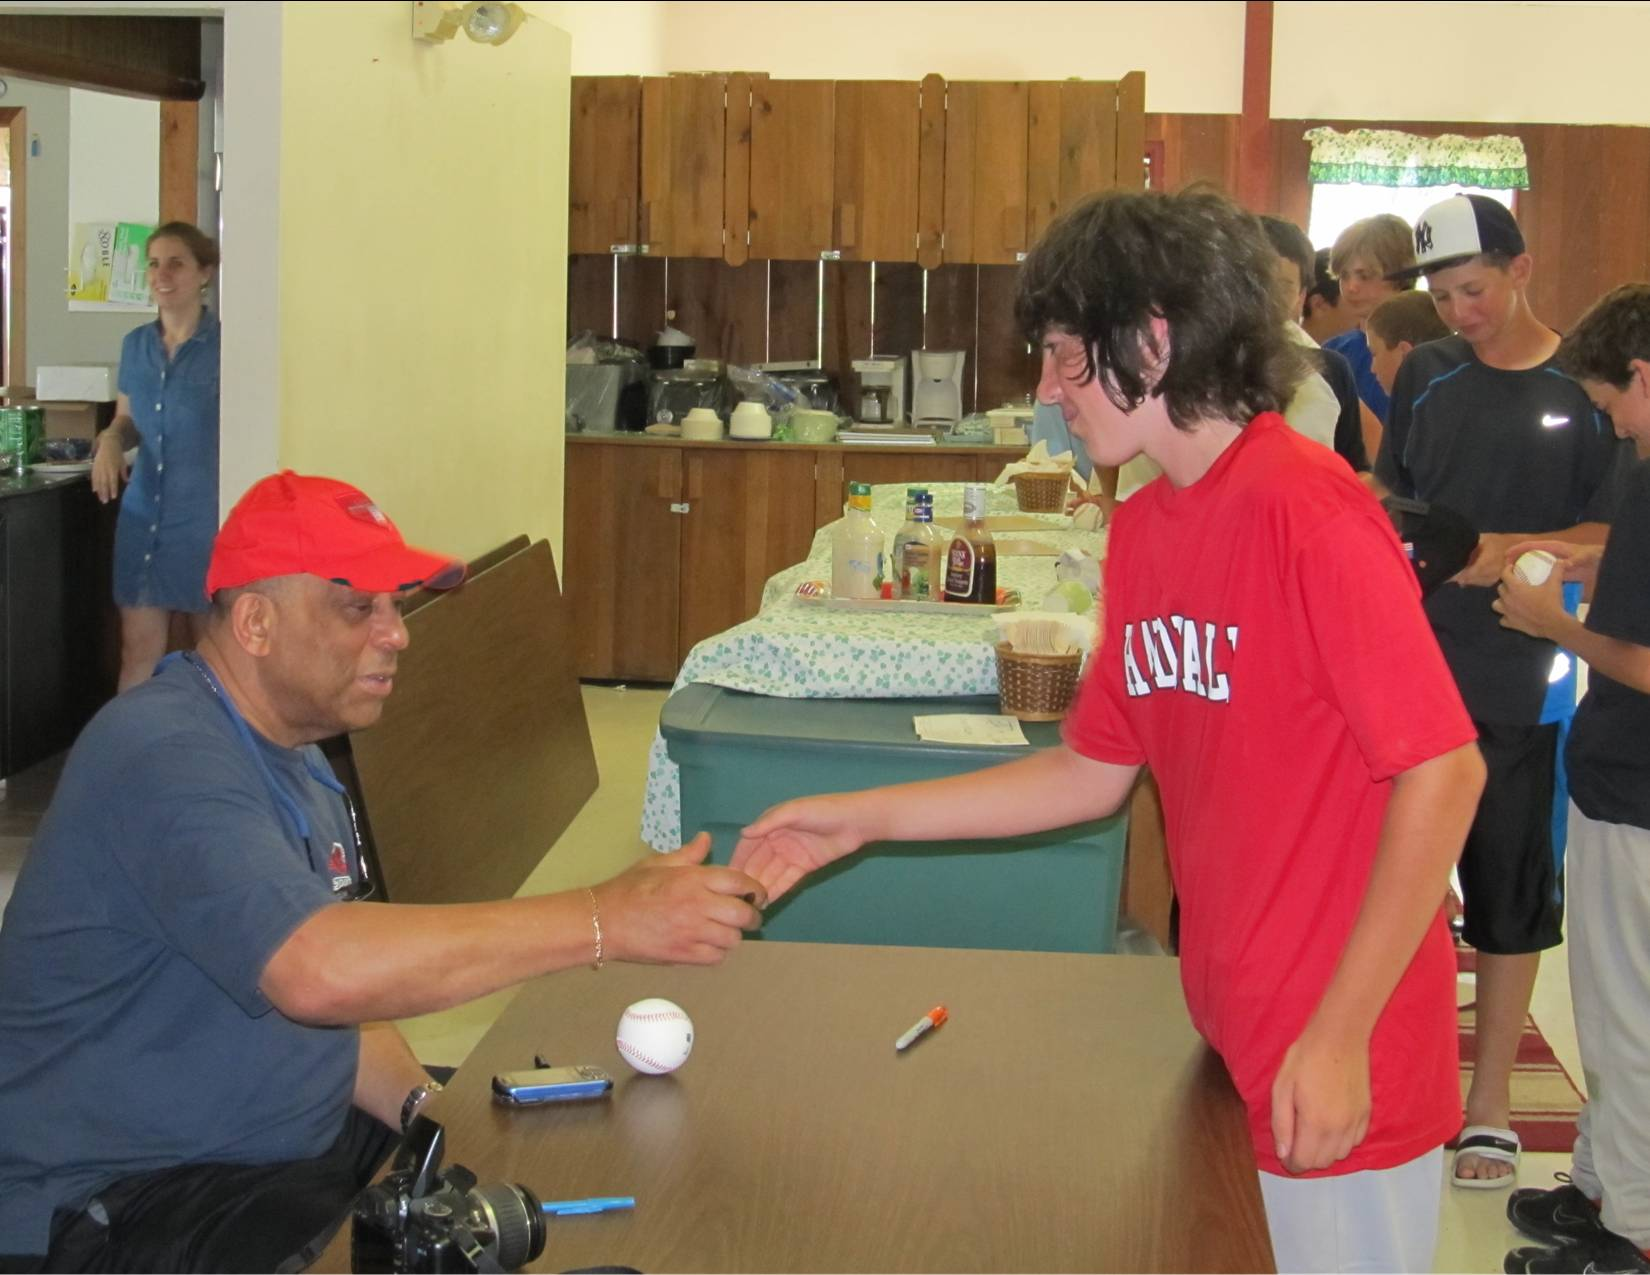 Orlando Cepeda at Camp